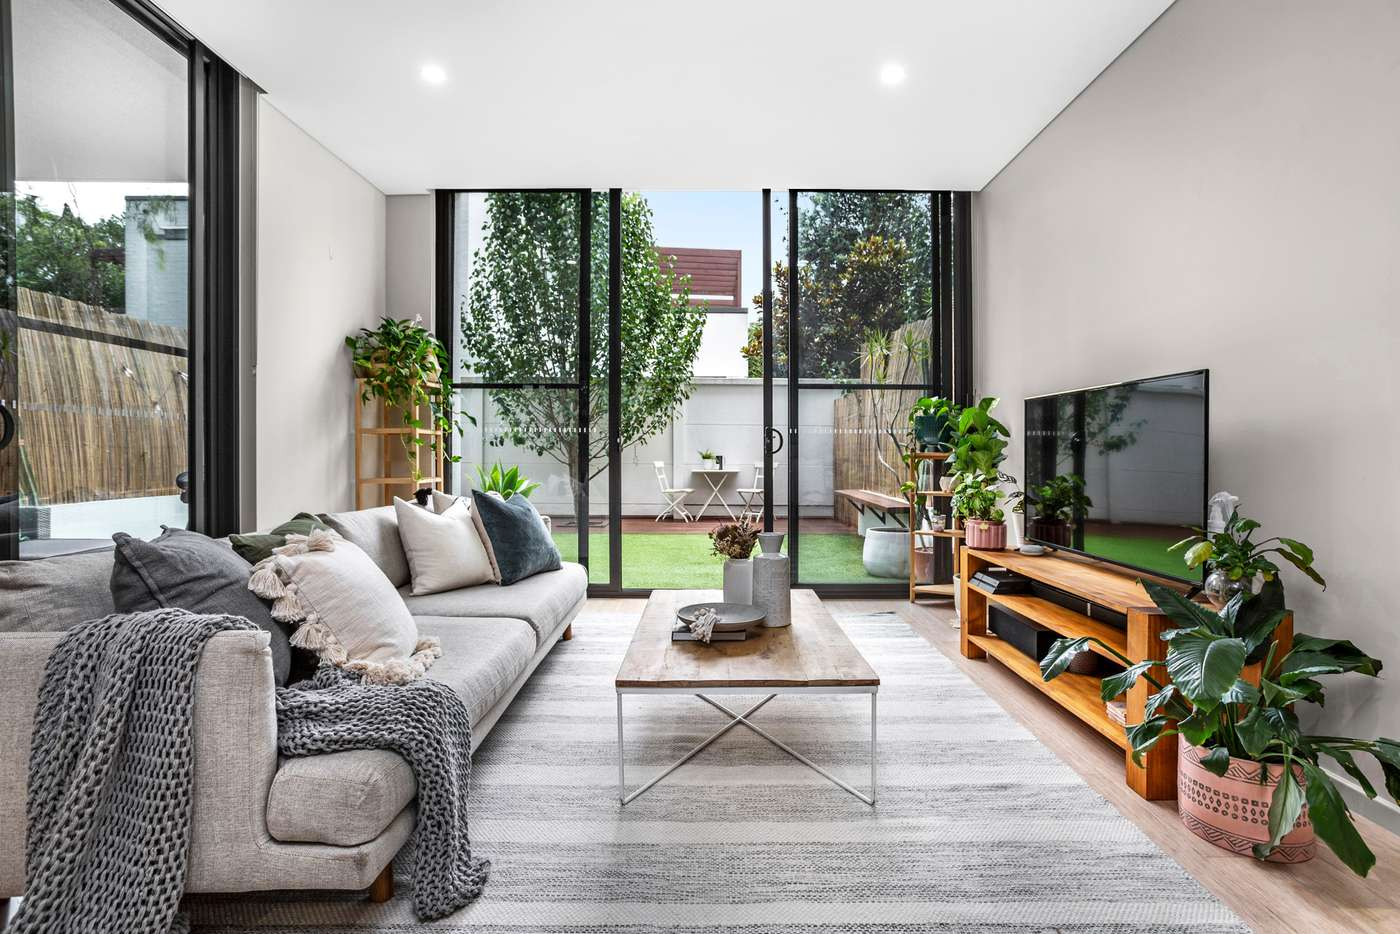 Main view of Homely studio listing, 13/90-92 Bay Street, Botany NSW 2019